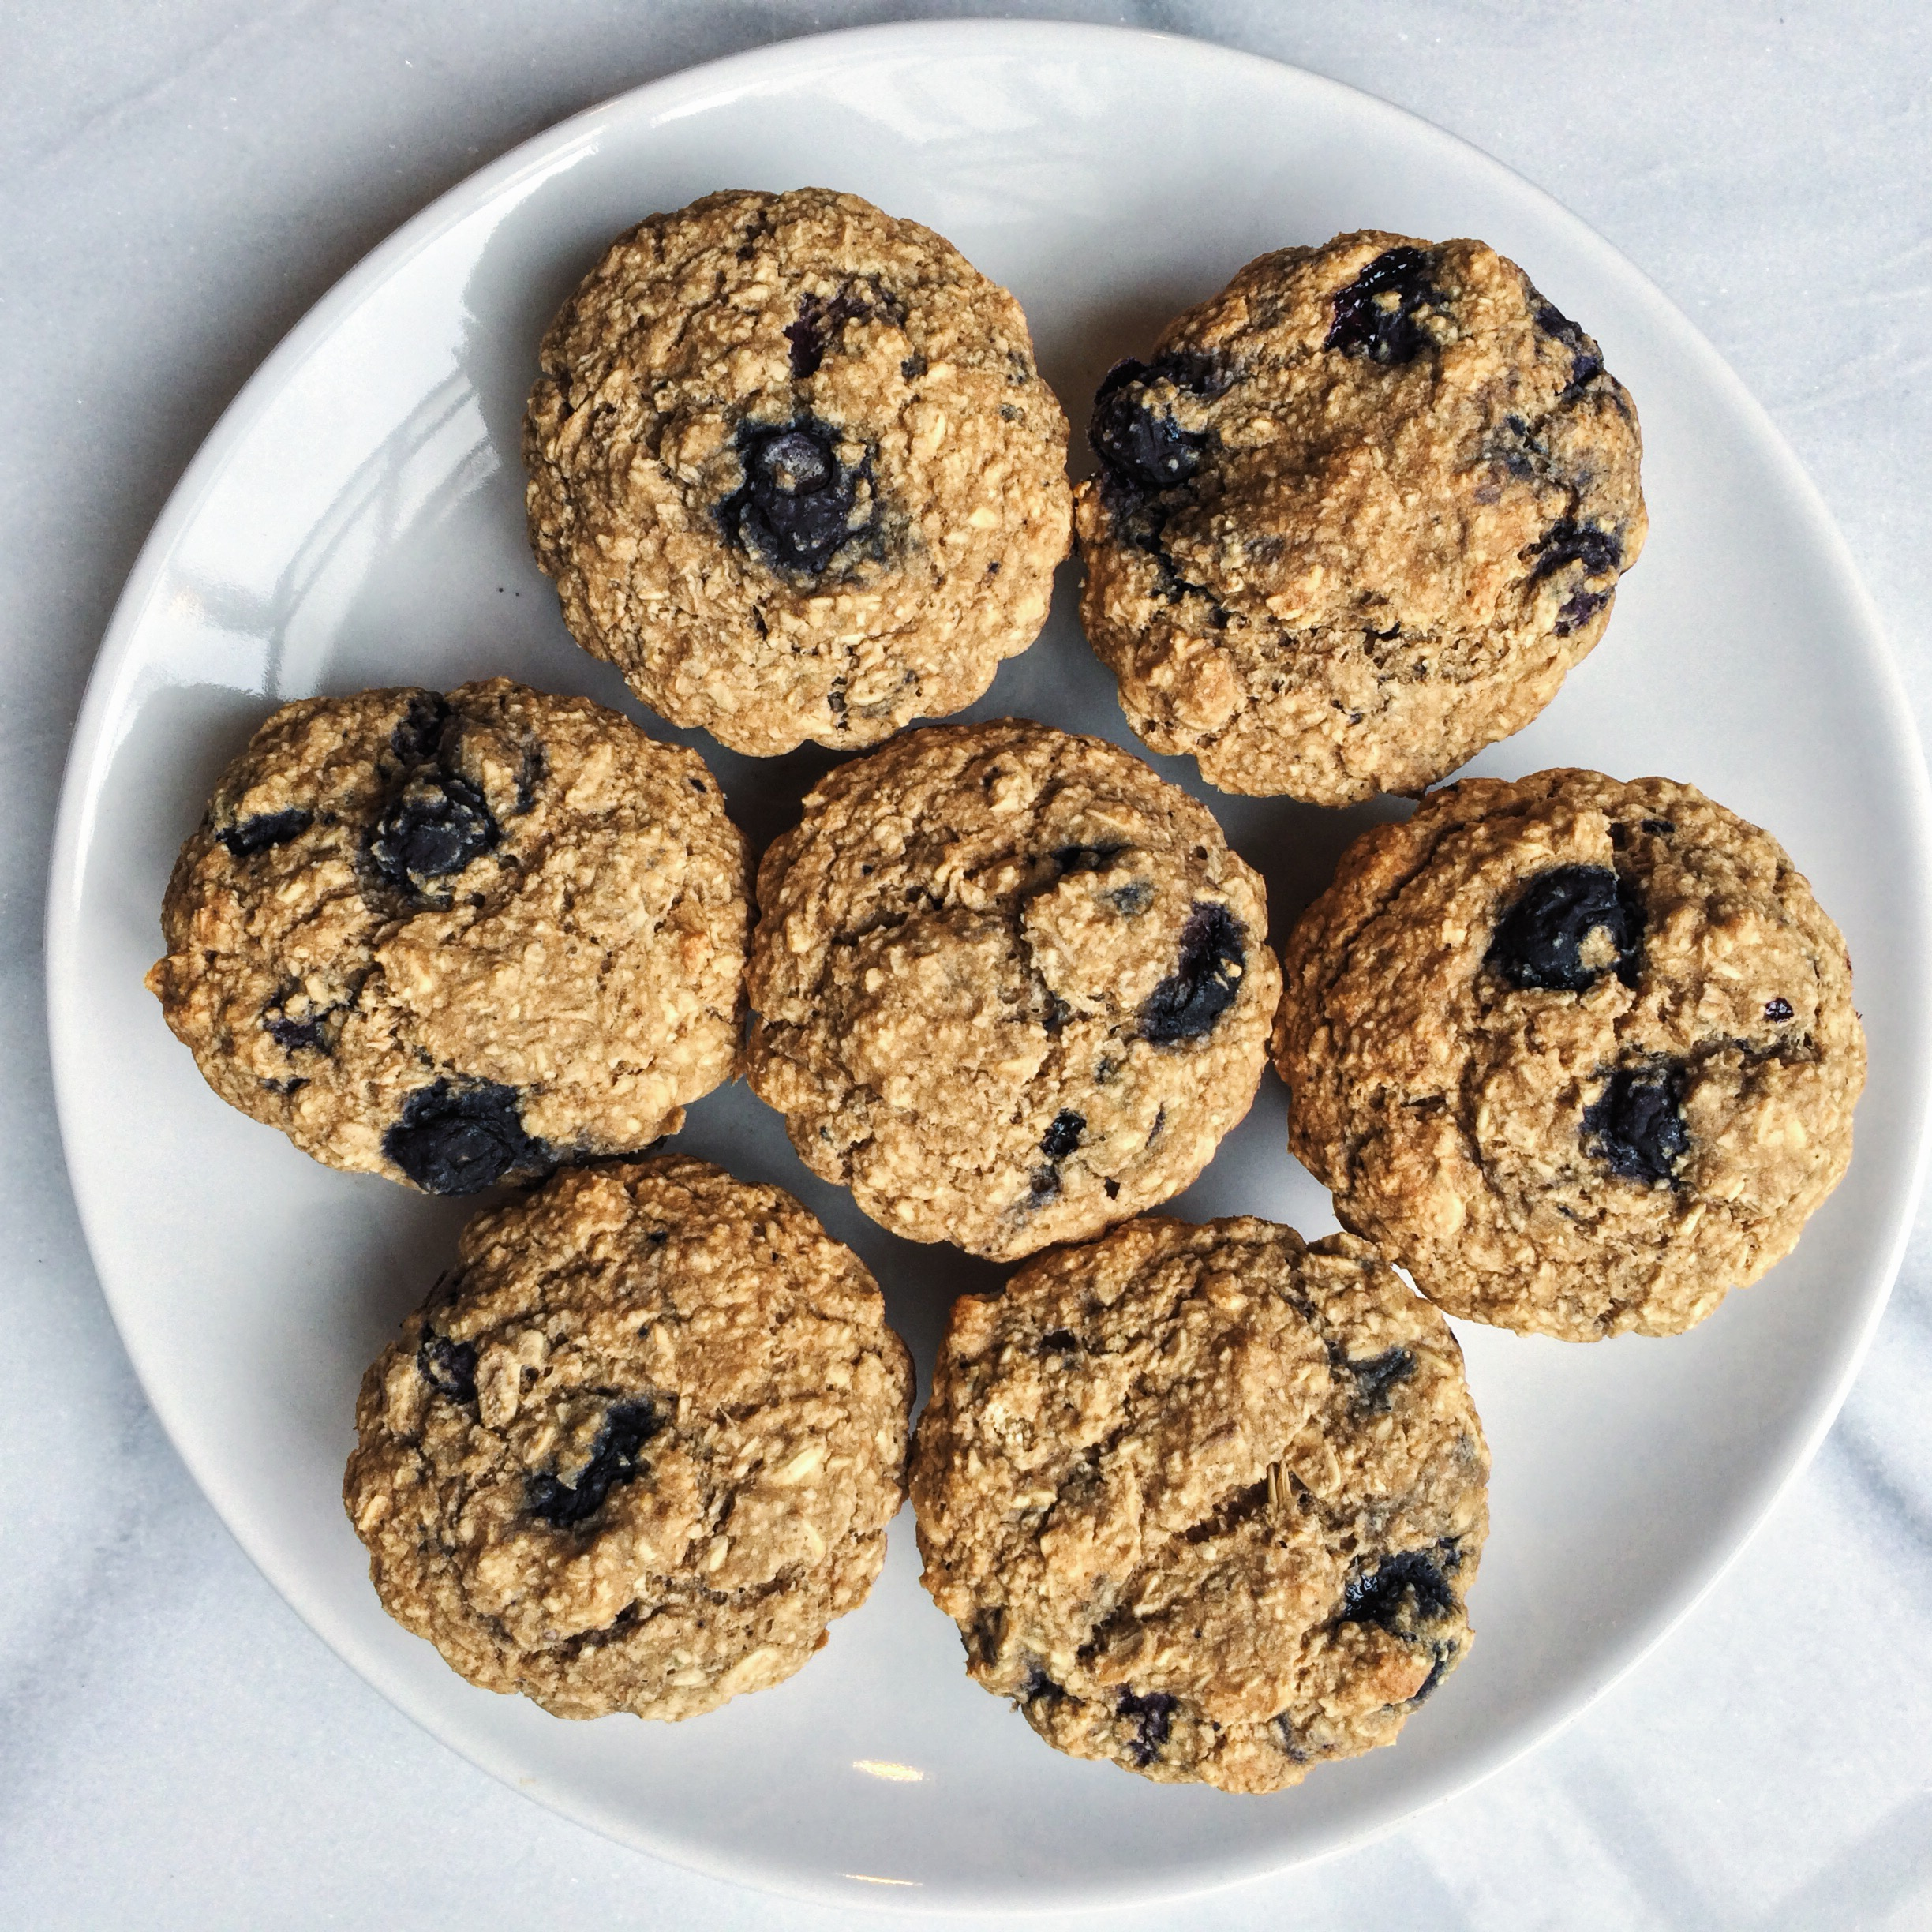 Oatmeal Blueberry Muffins (Vegan, GF + Oil-free)